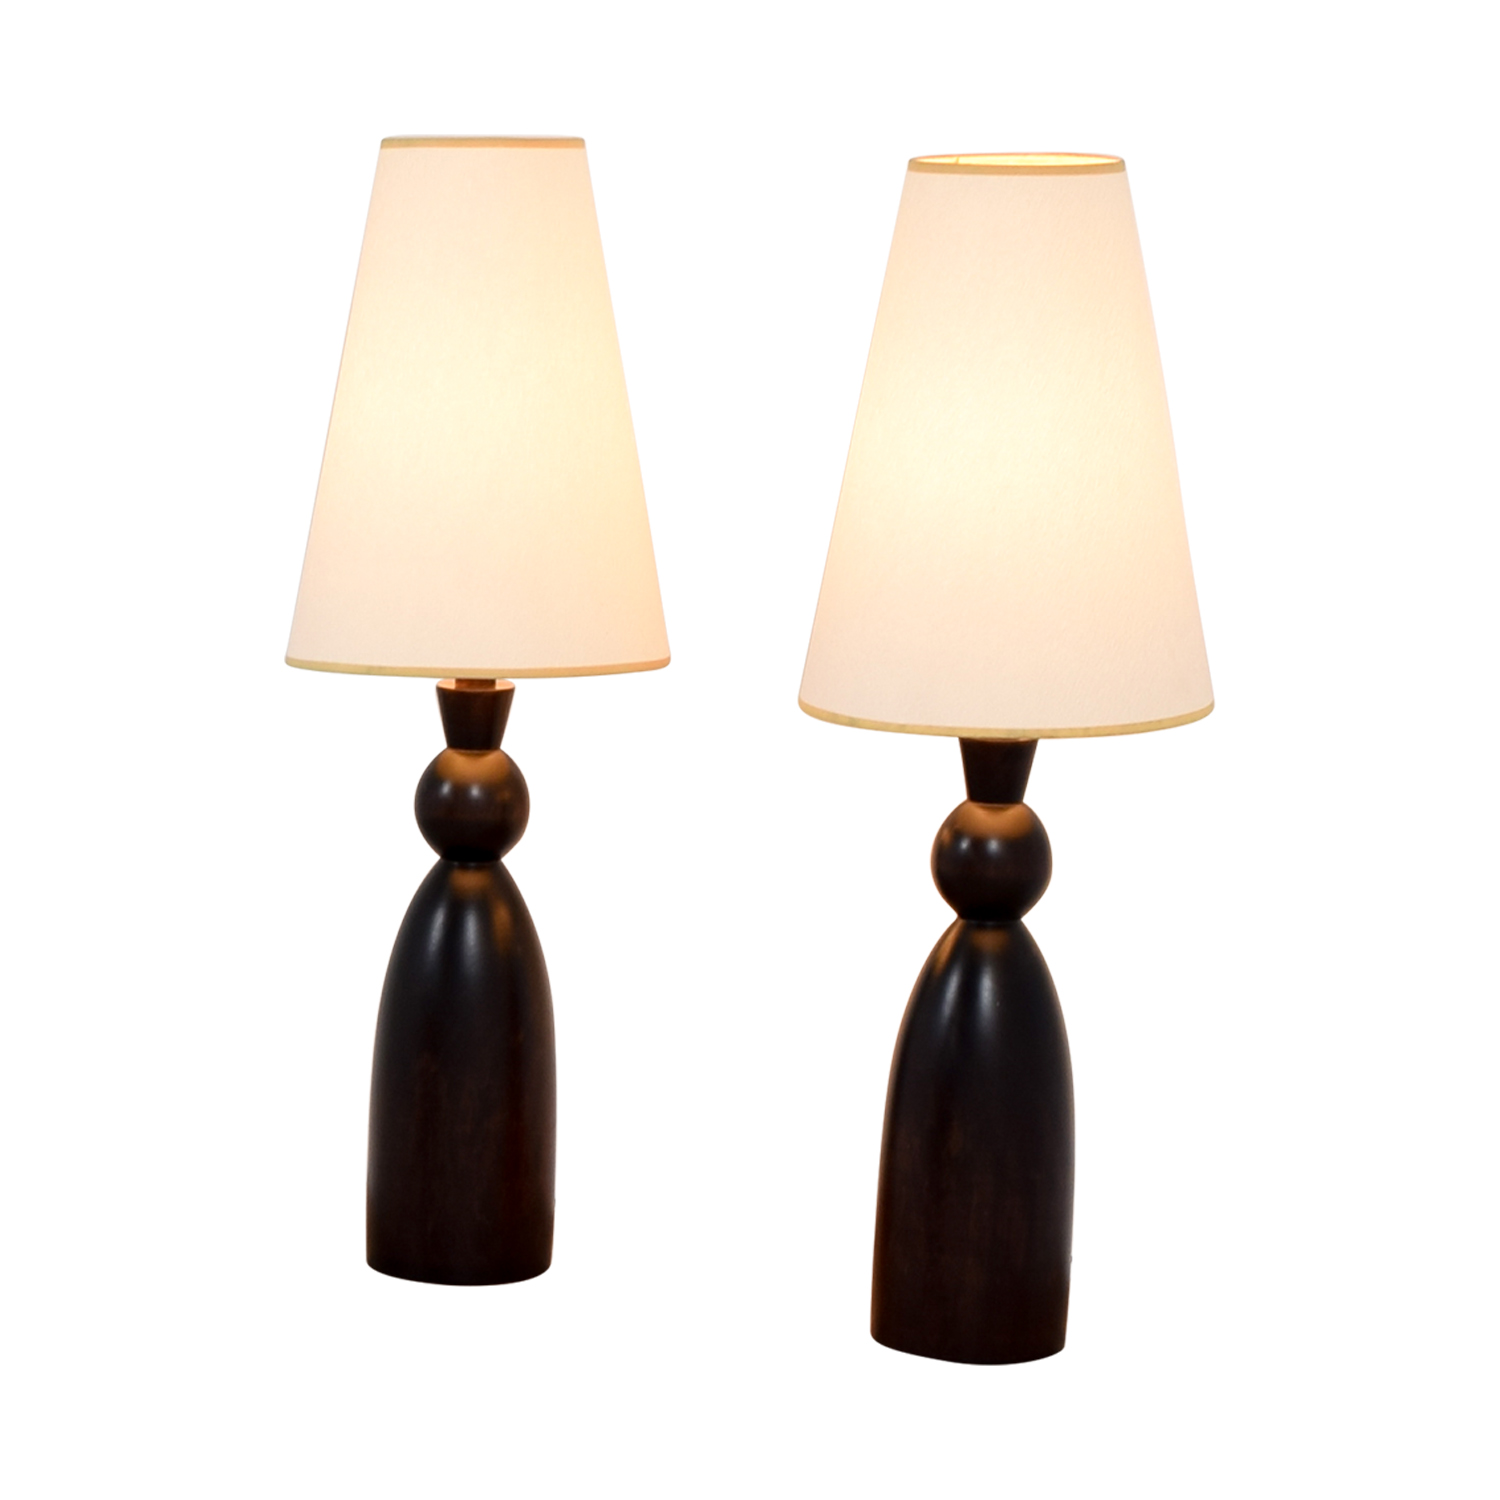 ... Ethan Allen Ethan Allen Mahogany Table Lamps For Sale ...